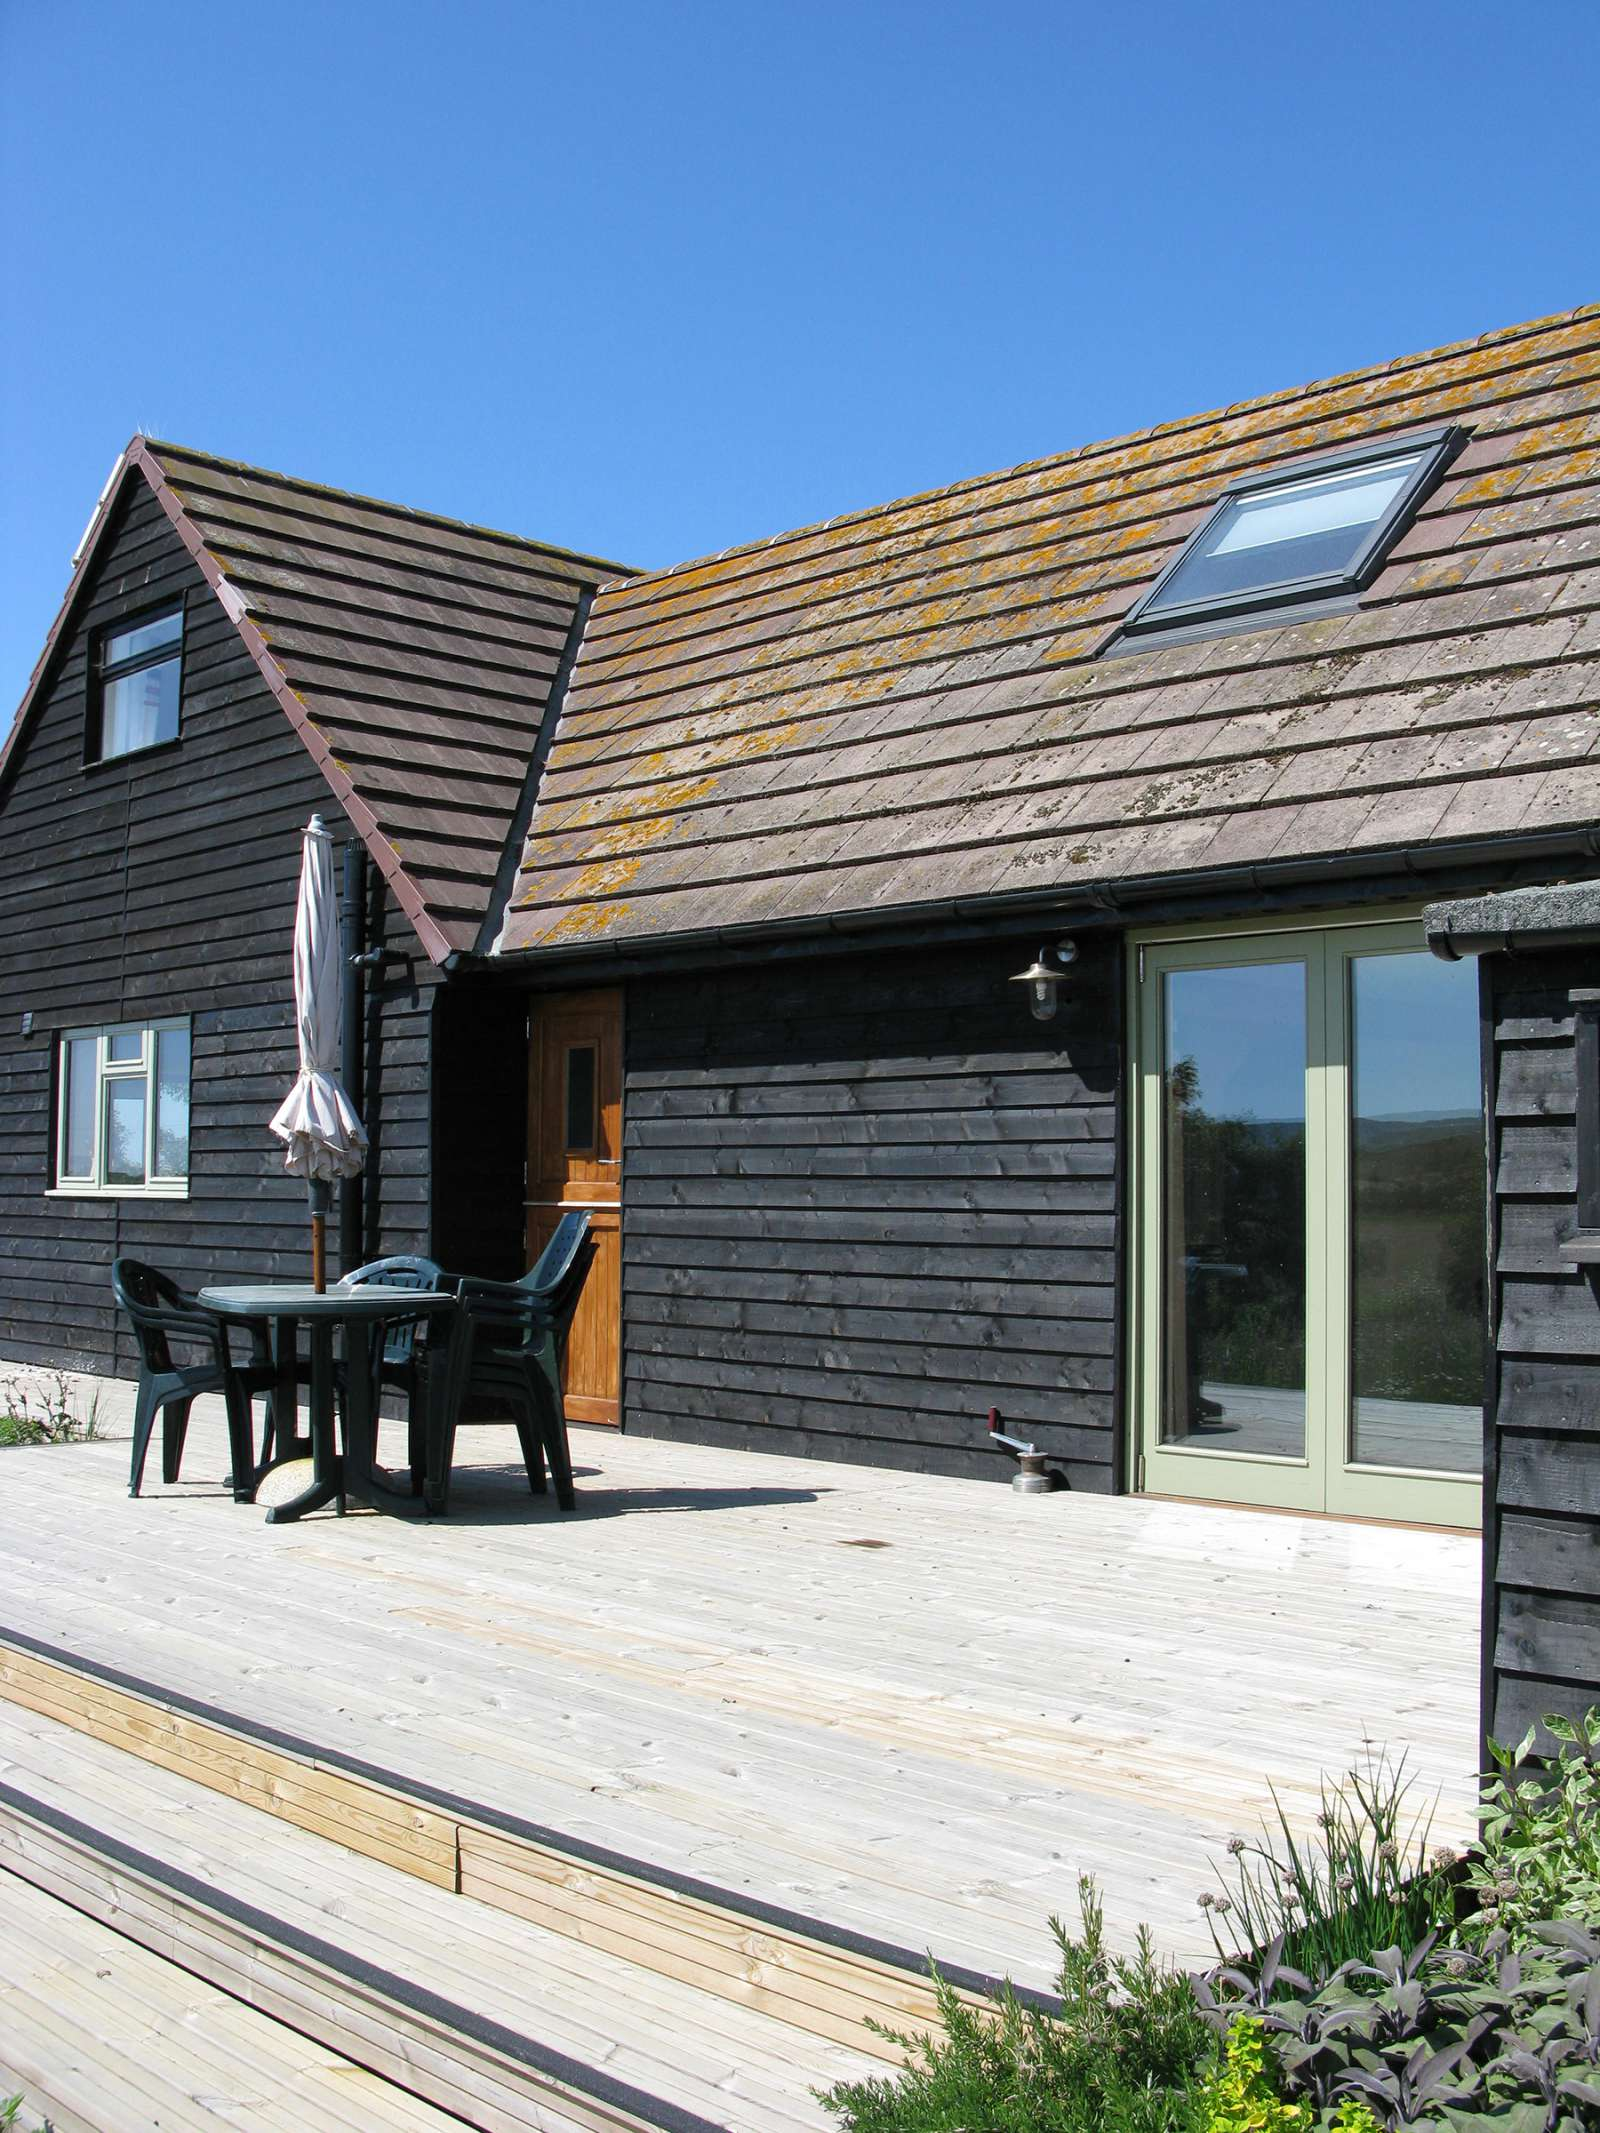 Holiday rental Cottage in Shorwell - The east deck of The Little Barn is a suntrap